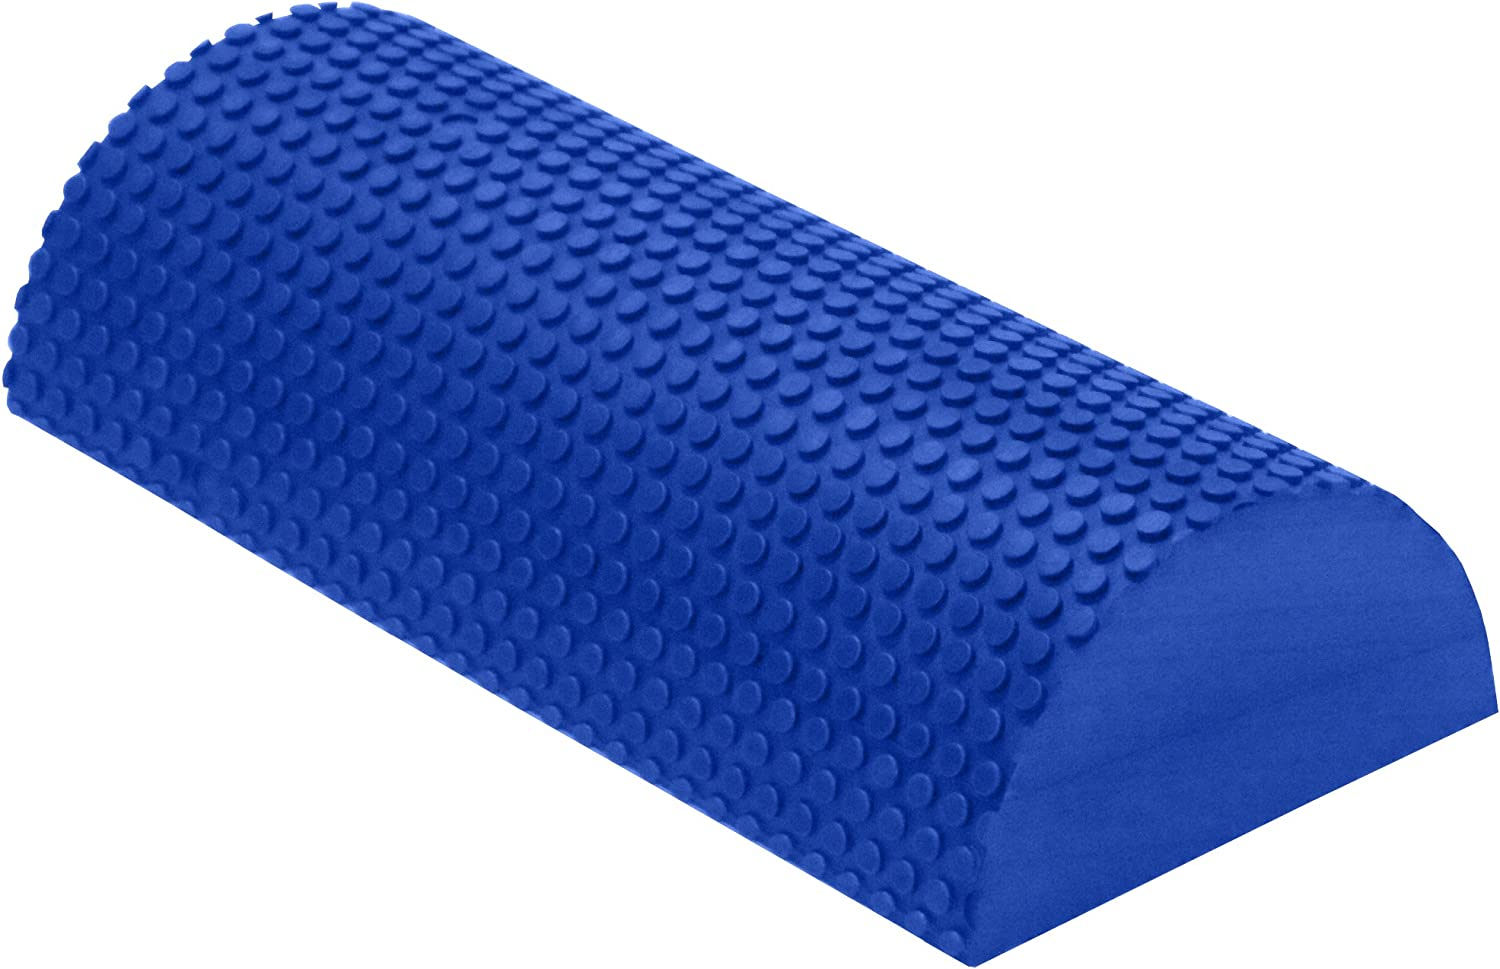 Bumps High Density EVA Foam Rollers Textured - 12 Half-Roller Made in USA Bean Products